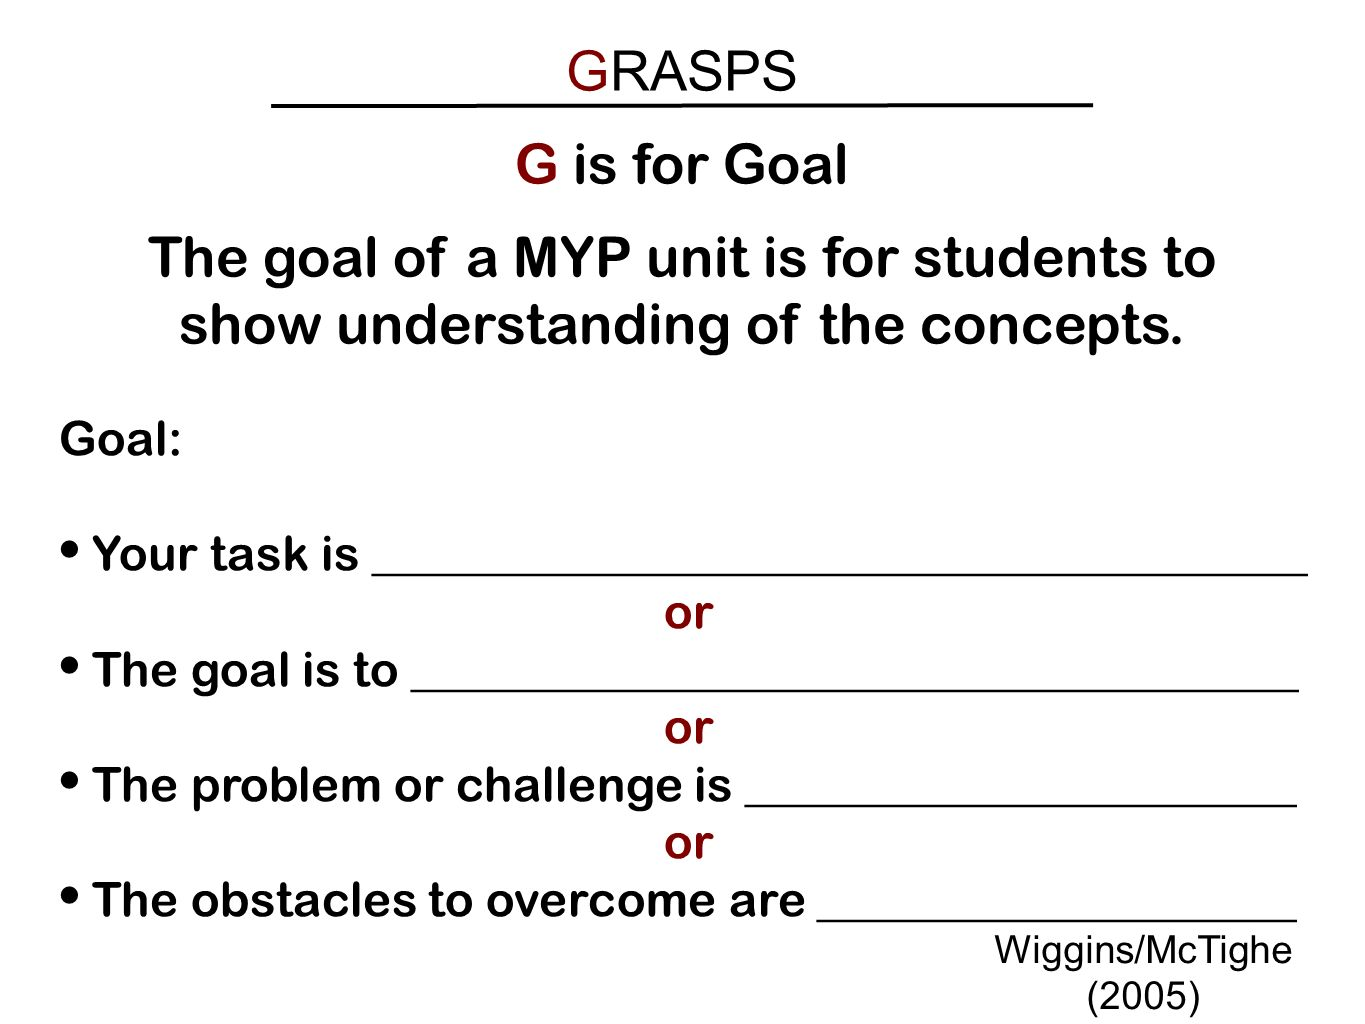 GRASPS G is for Goal. The goal of a MYP unit is for students to show understanding of the concepts.